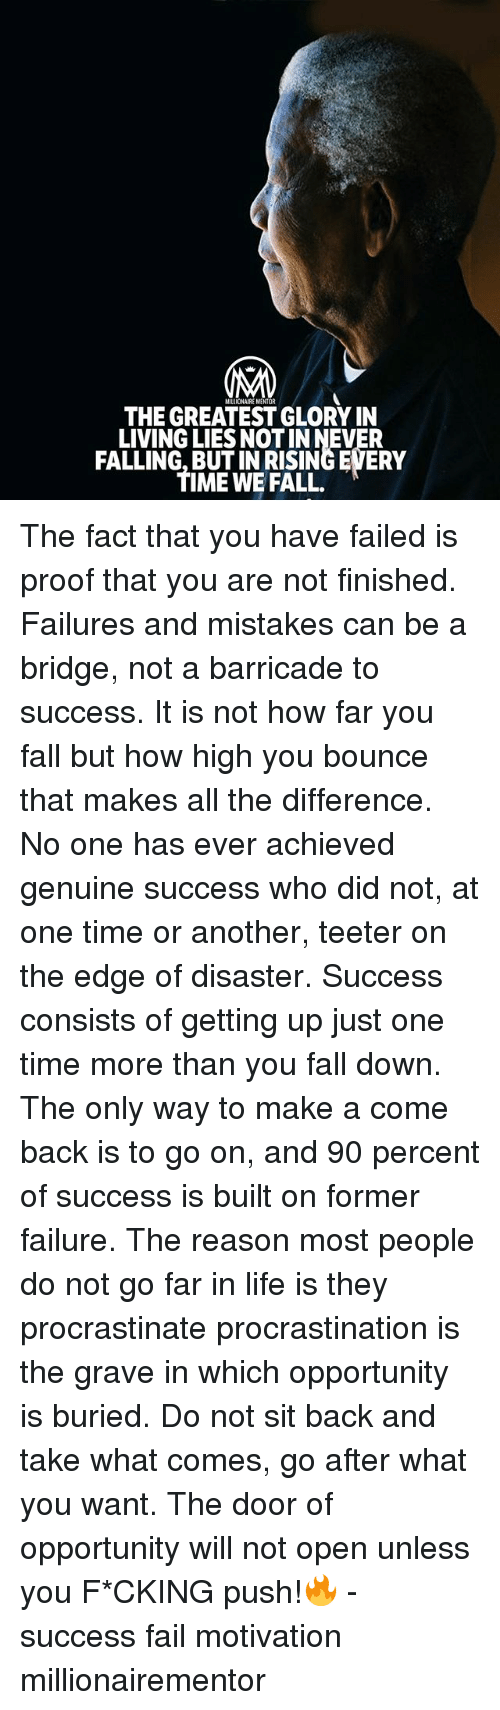 Fail, Fall, and How High: MILLIONAIRE MENTOR  THE GREATEST GLORY IN  LIVING LIES NOT IN NEVER  FALLING, BUT IN RISING EVERY  TIME WE FALL The fact that you have failed is proof that you are not finished. Failures and mistakes can be a bridge, not a barricade to success. It is not how far you fall but how high you bounce that makes all the difference. No one has ever achieved genuine success who did not, at one time or another, teeter on the edge of disaster. Success consists of getting up just one time more than you fall down. The only way to make a come back is to go on, and 90 percent of success is built on former failure. The reason most people do not go far in life is they procrastinate procrastination is the grave in which opportunity is buried. Do not sit back and take what comes, go after what you want. The door of opportunity will not open unless you F*CKING push!🔥 - success fail motivation millionairementor